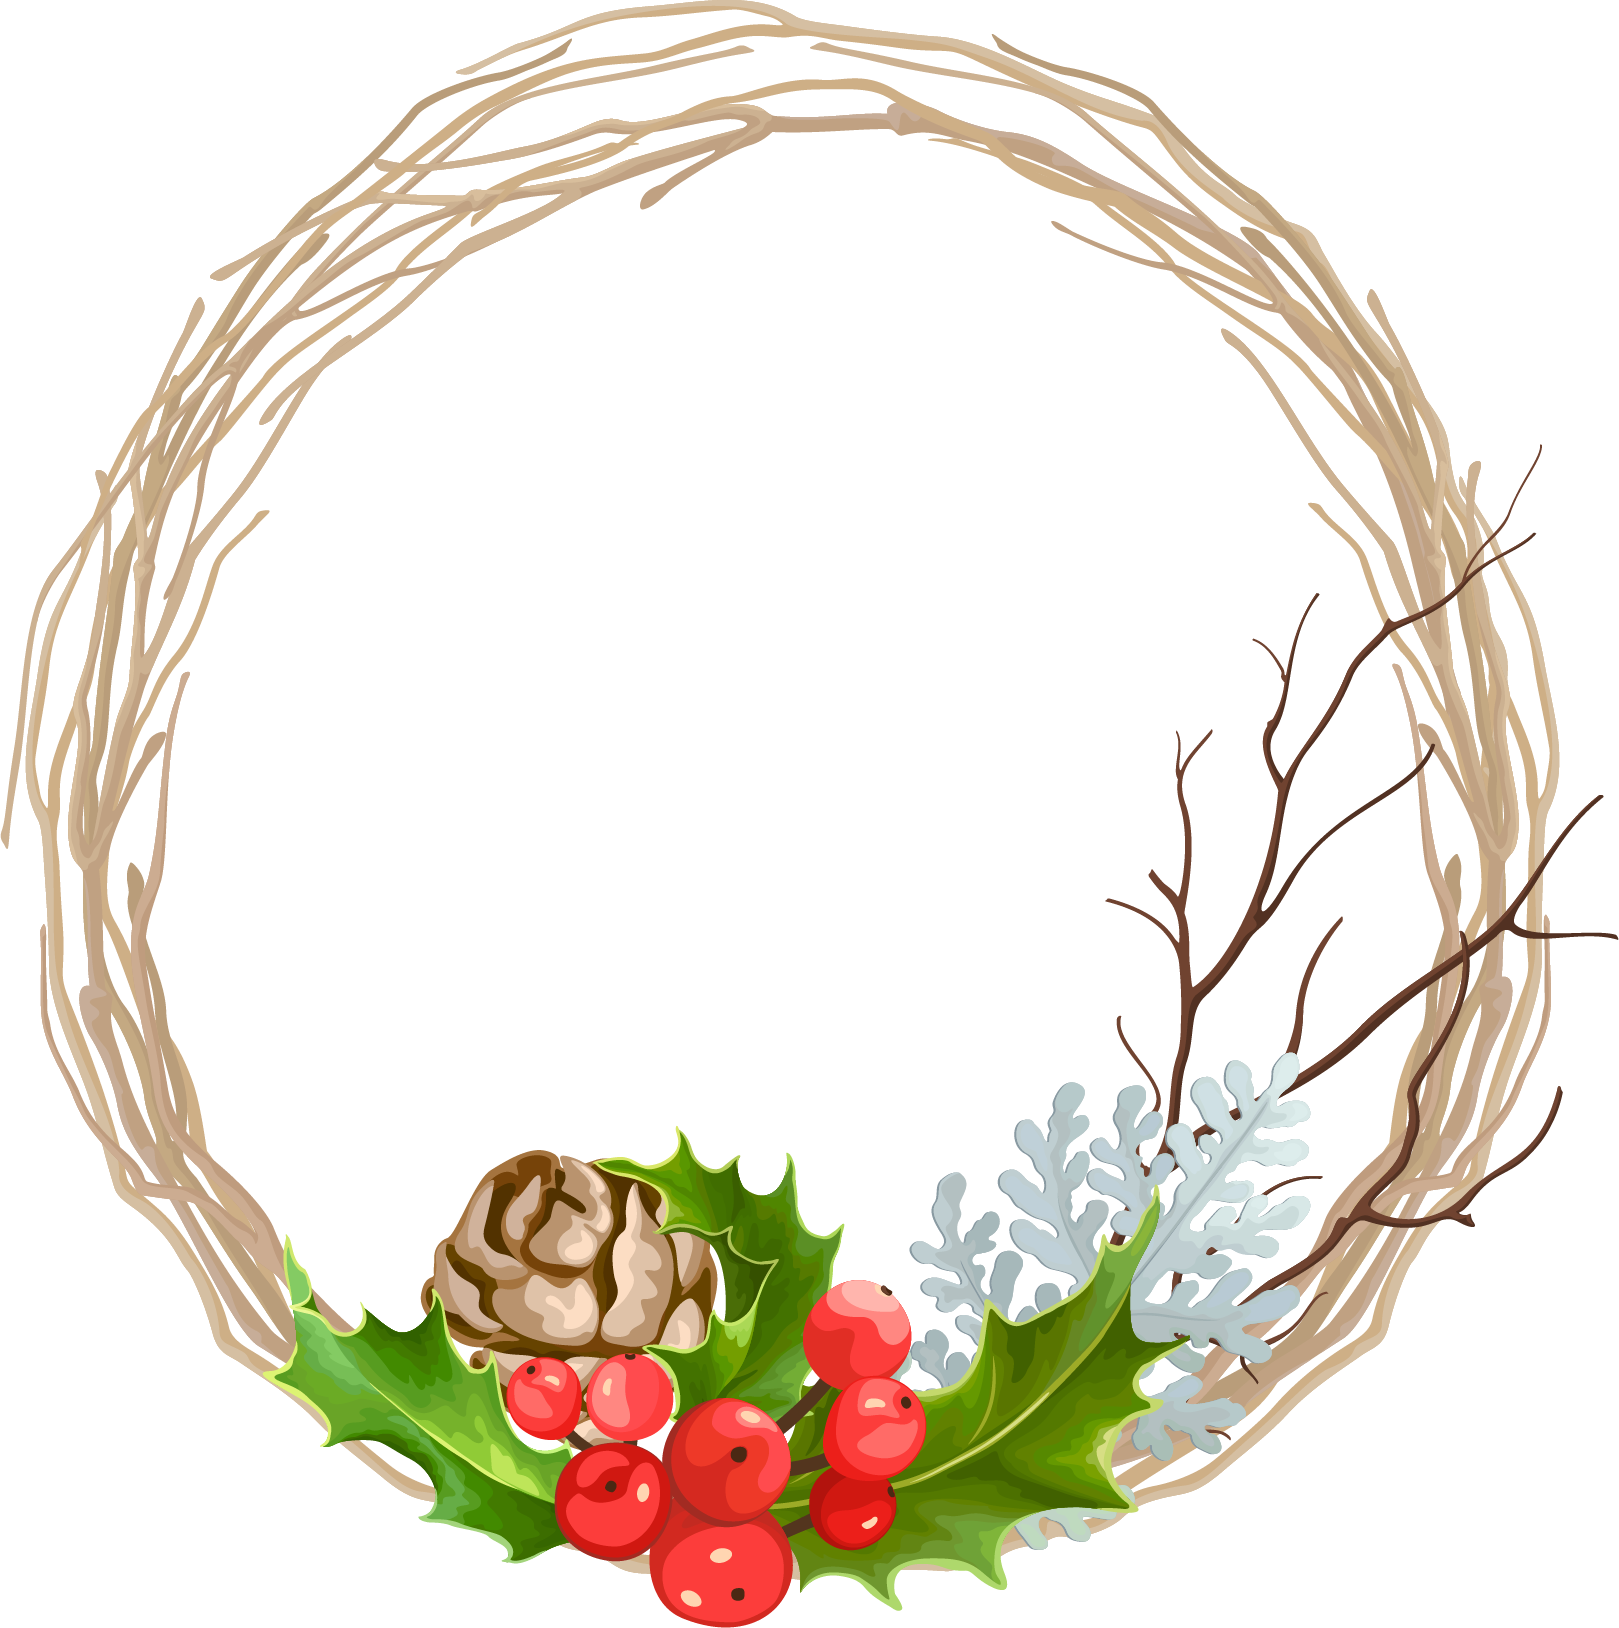 Wreath vector png. Christmas garland decoration transprent